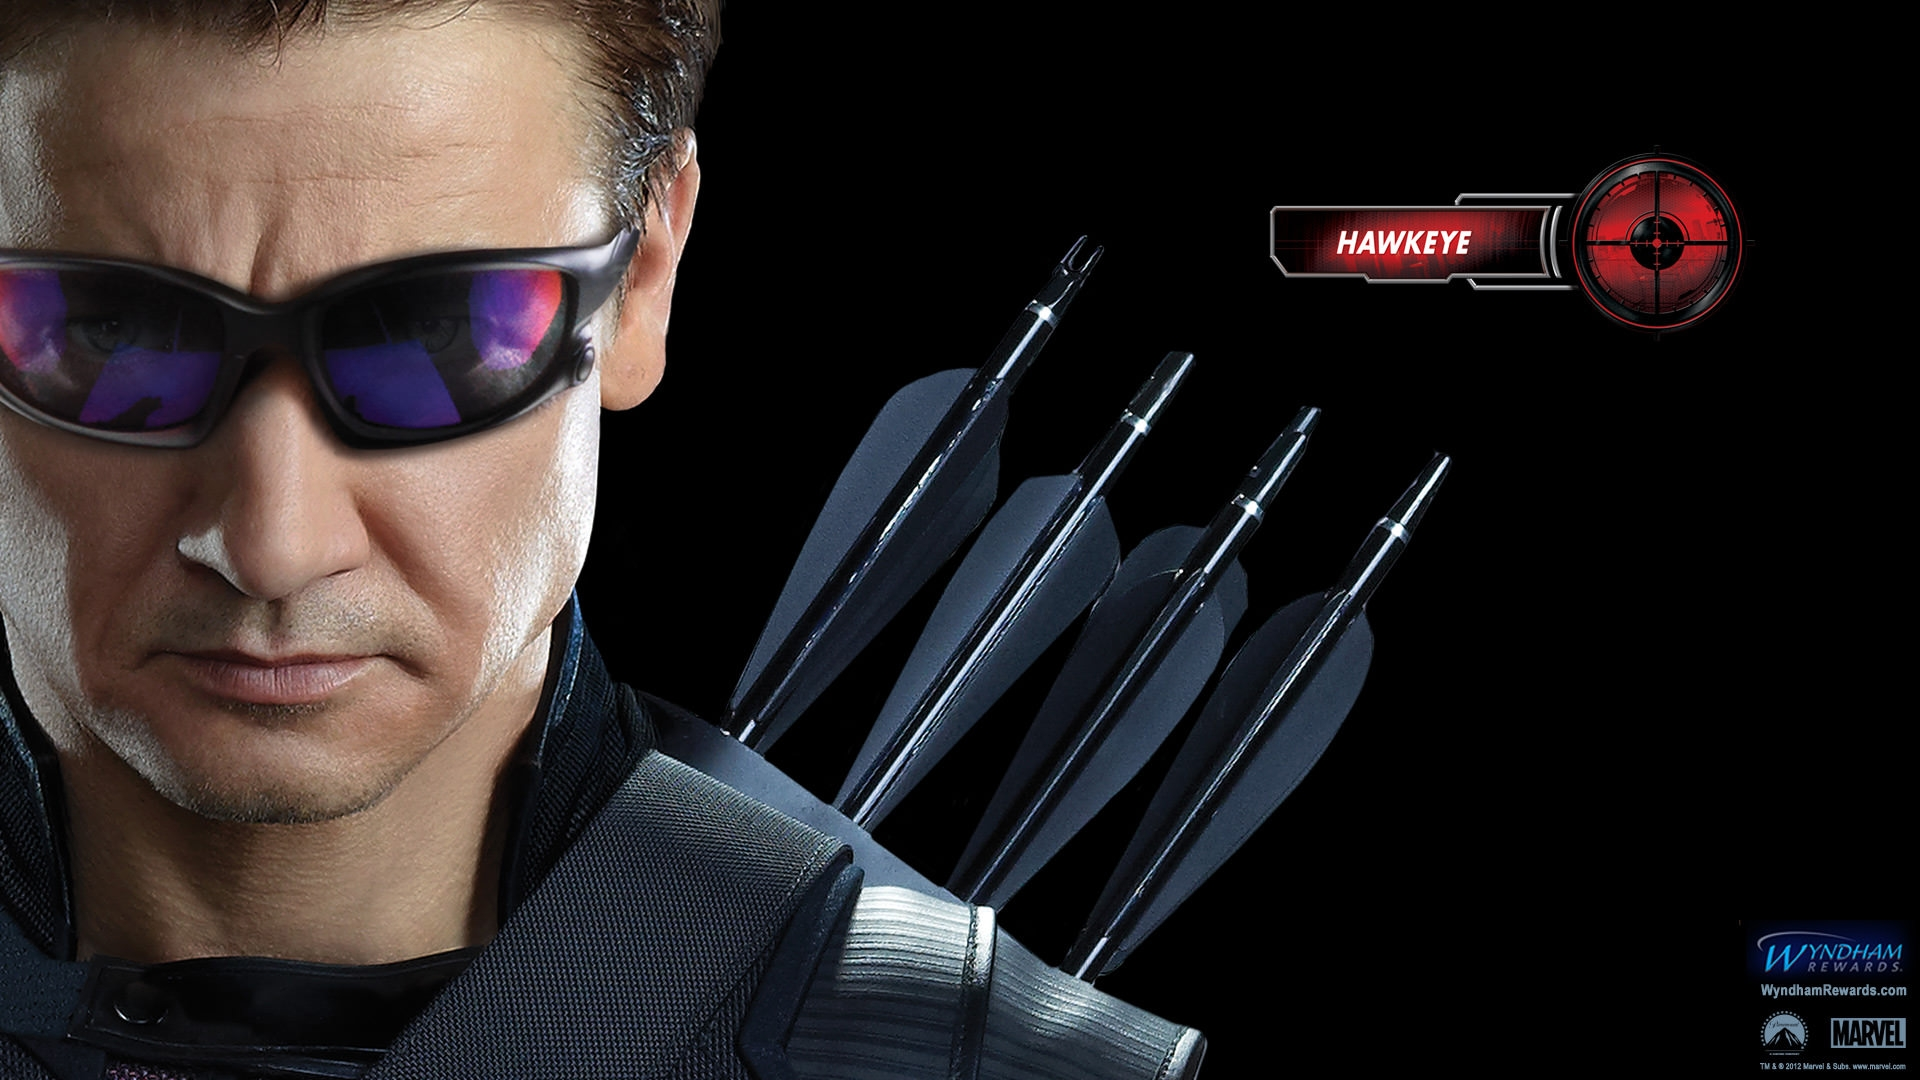 Hawkeye The Avengers Wallpaper